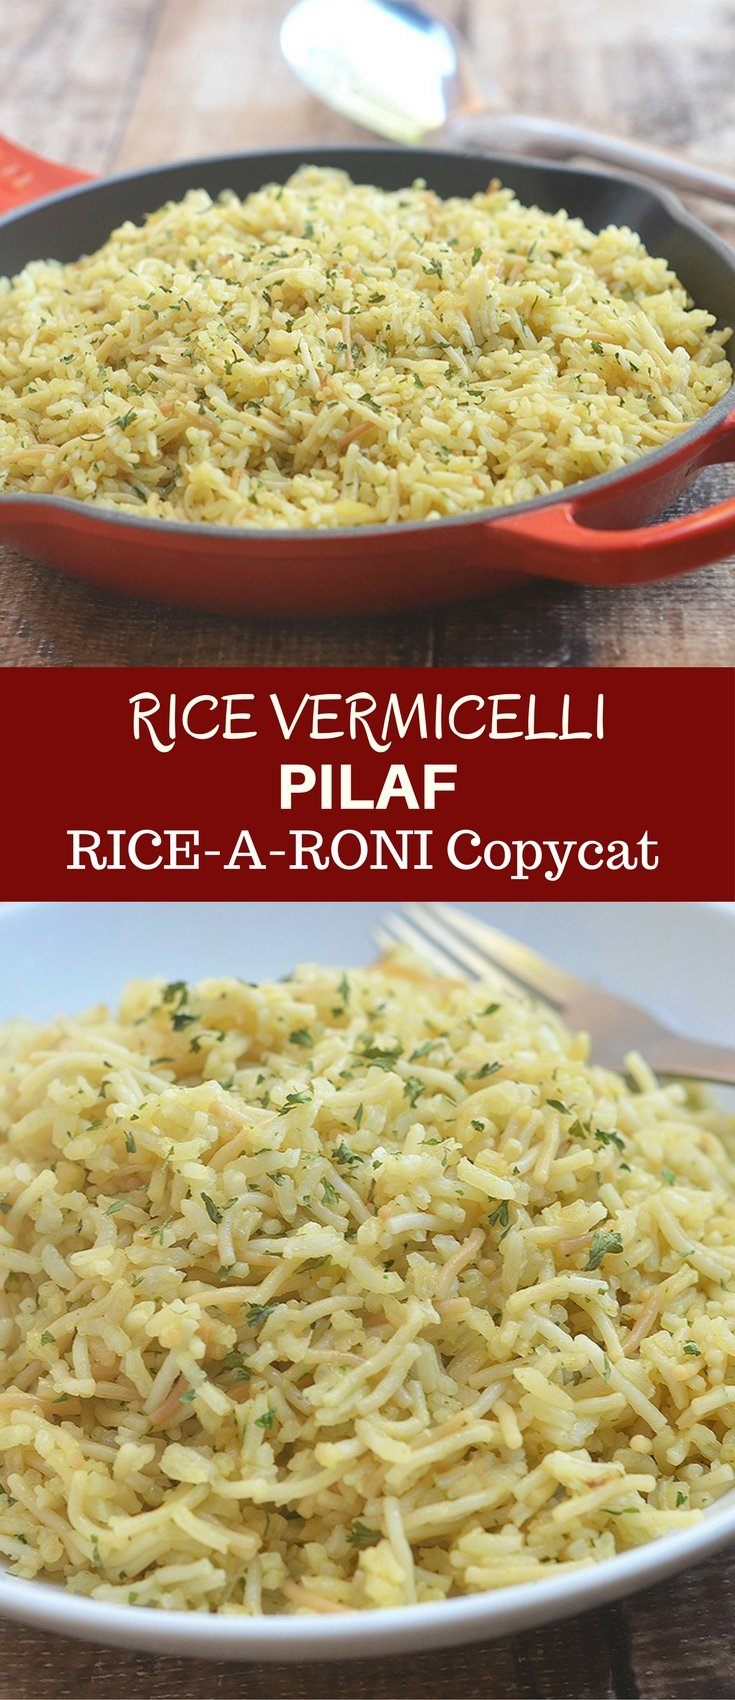 Rice Vermicelli Pilaf is a spot on Rice-A-Roni San Francisco Treat copycat. Made from scratch and fresh ingredients, it's healthier and tastes a whole lot better than from the box!